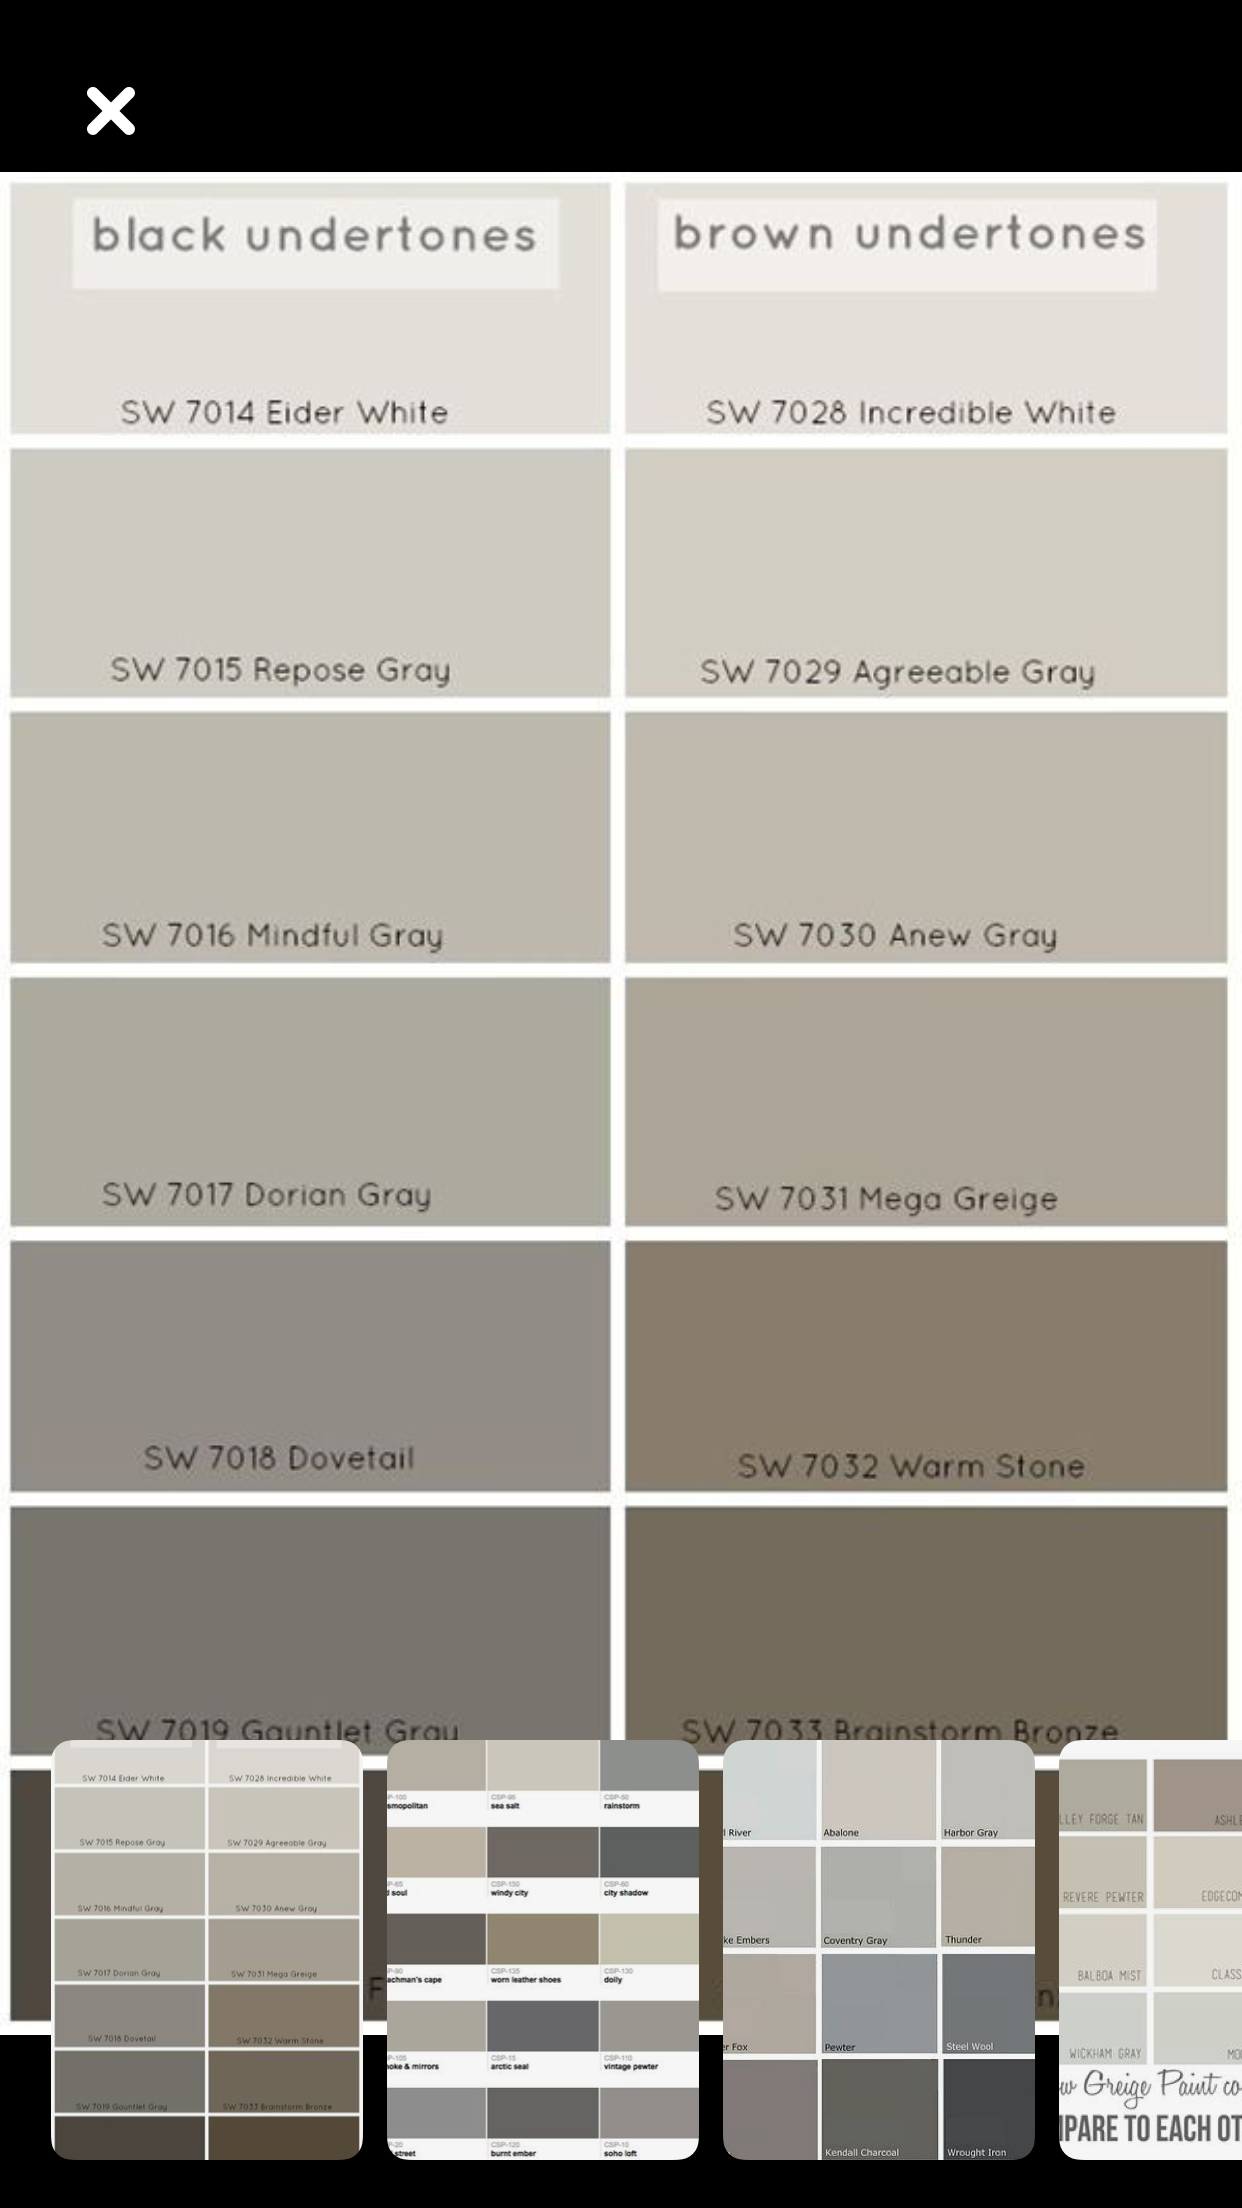 Agreeable Gray Agreeable Gray Anew Gray Mindful Gray